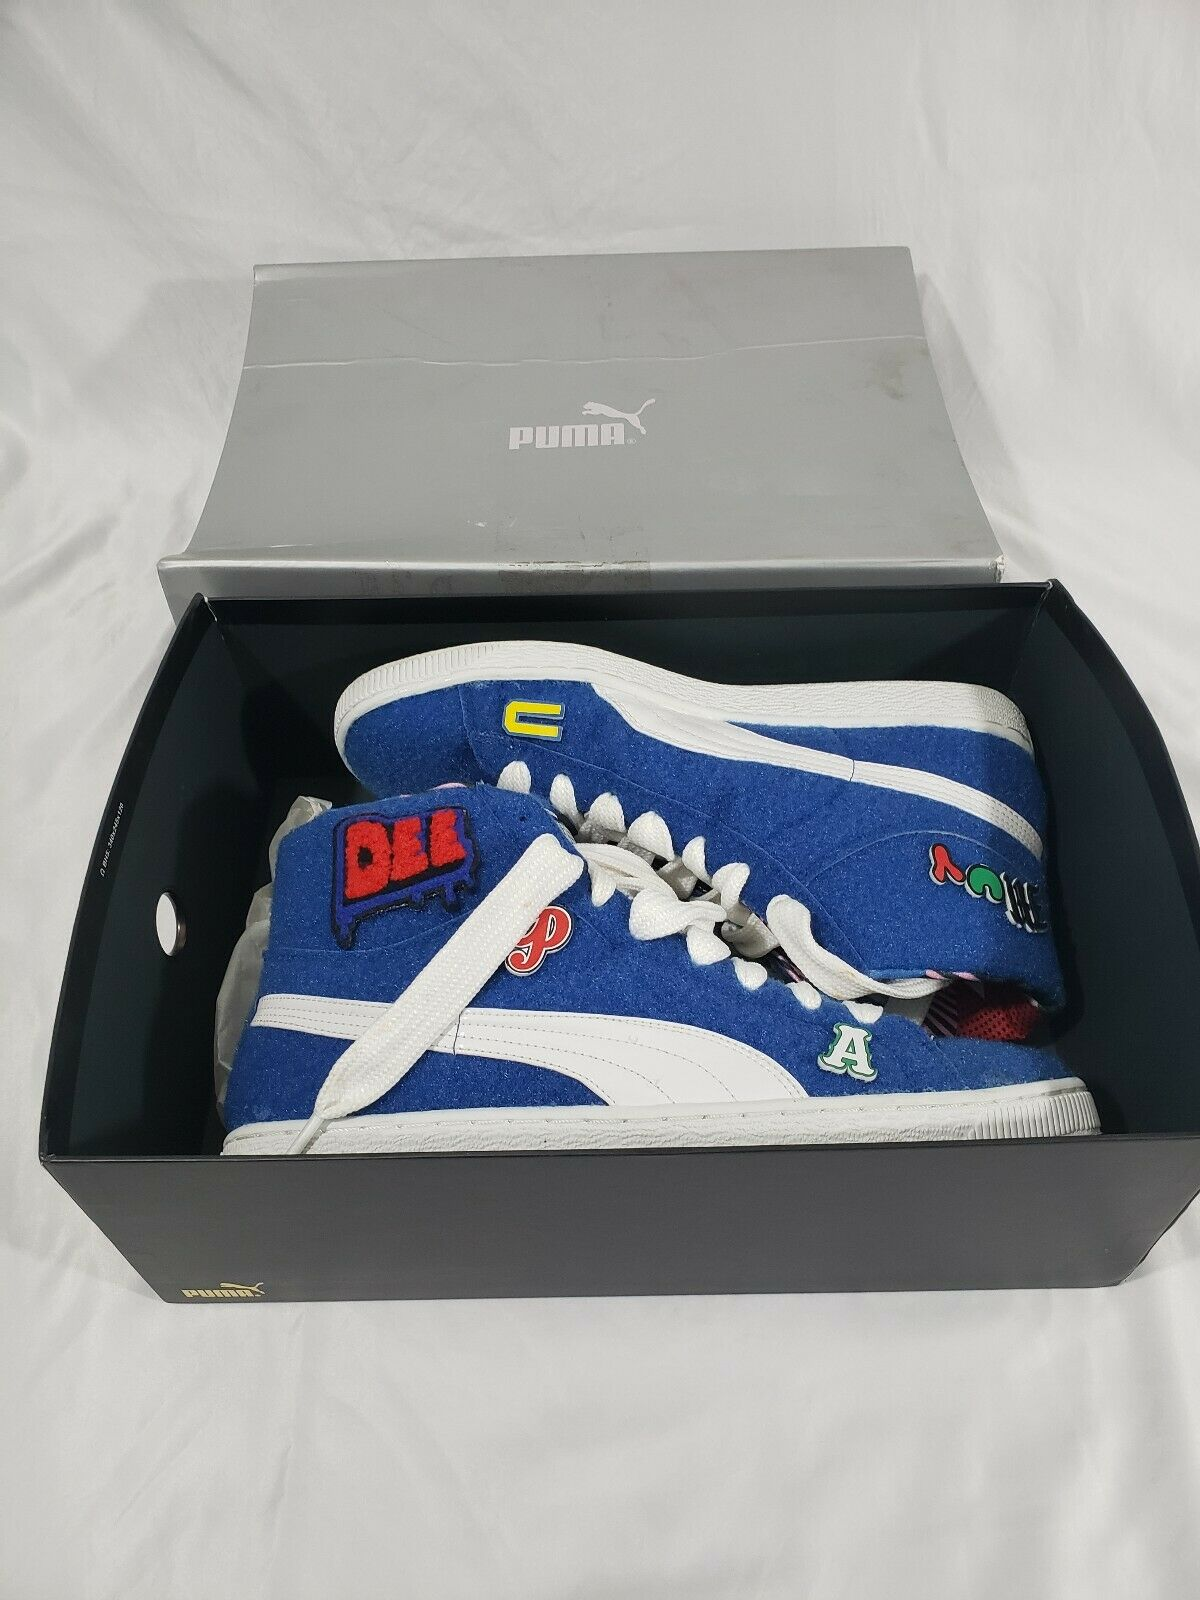 Para hombre (360085 02) Puma Dee Ricky CR Basket Mid x and US 10